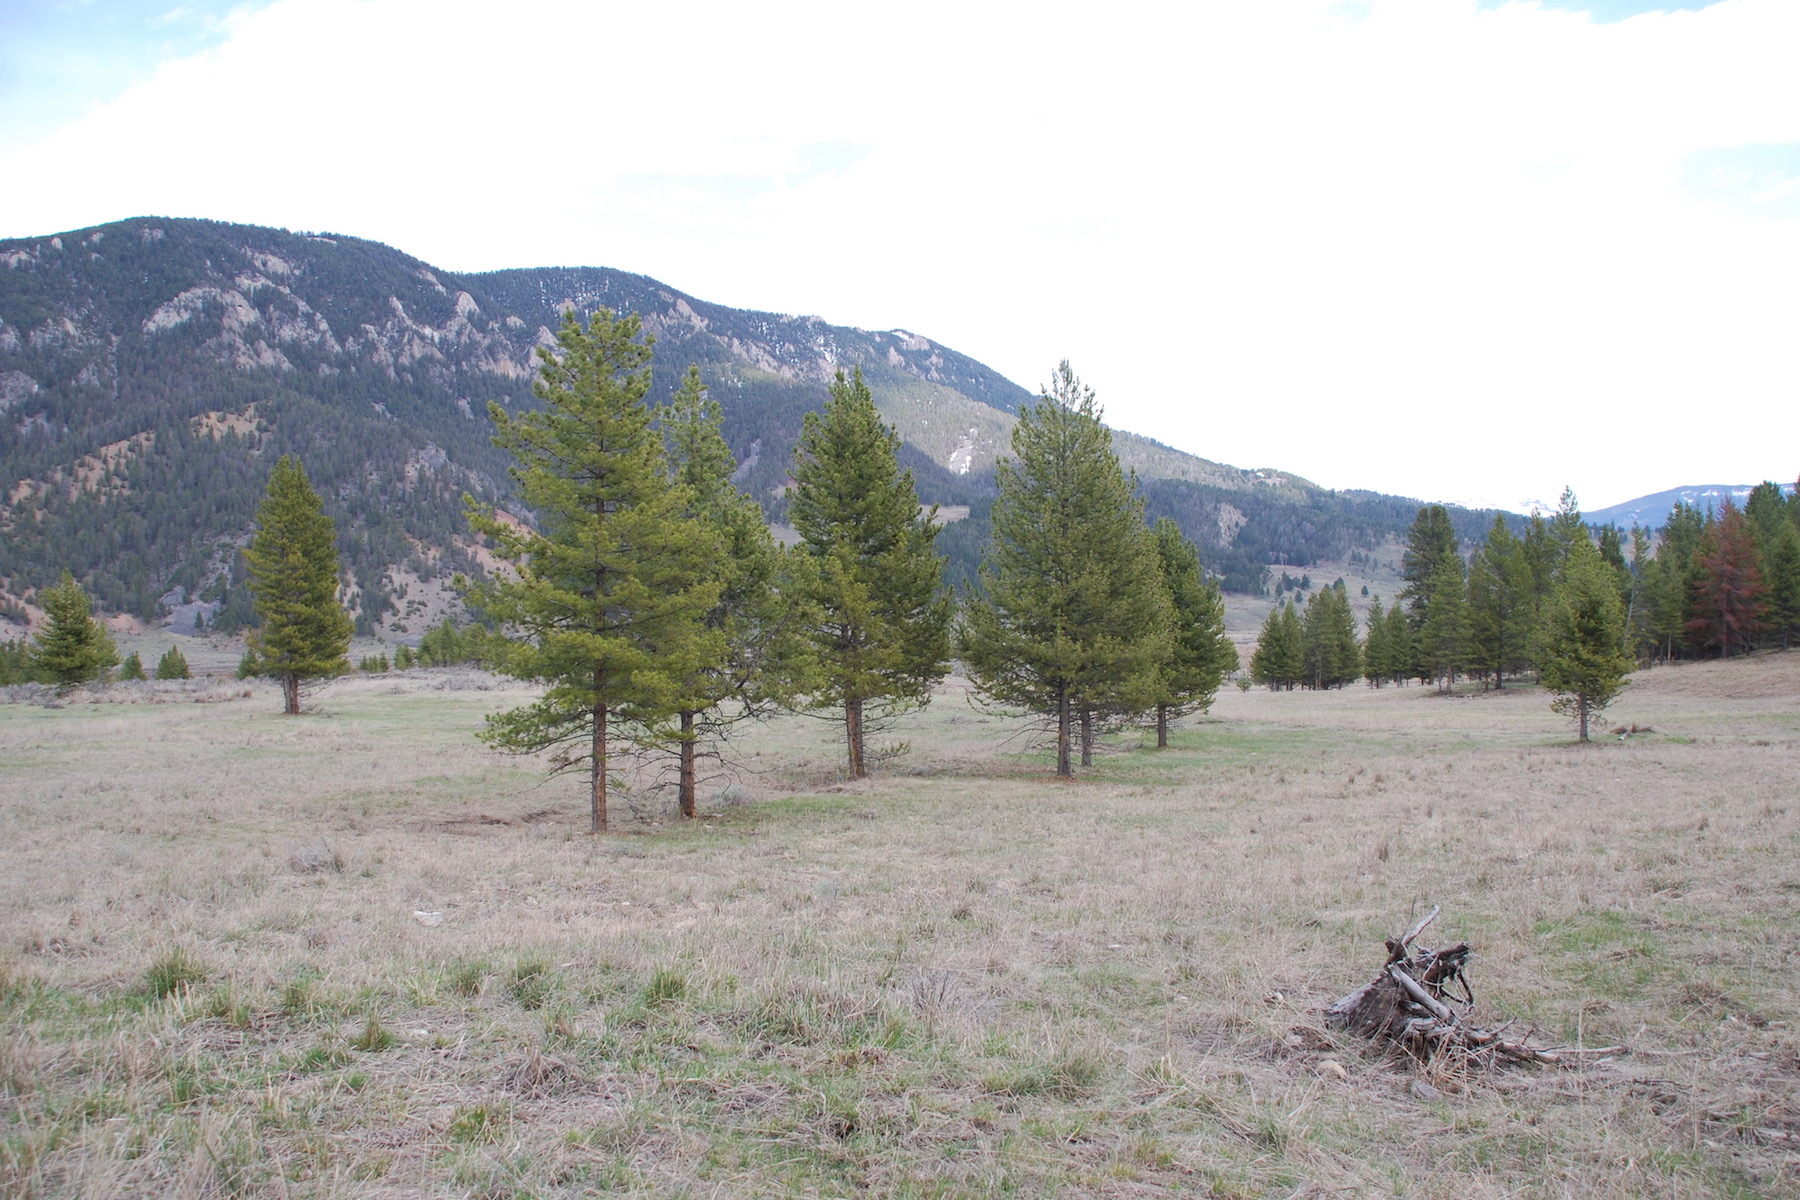 Land for Sale at Tract 1 Remainder, Section 5, Big Sky Hwy 191, Tr 1 Remainder, Sec 5, Big Sky, Montana, 59716 United States